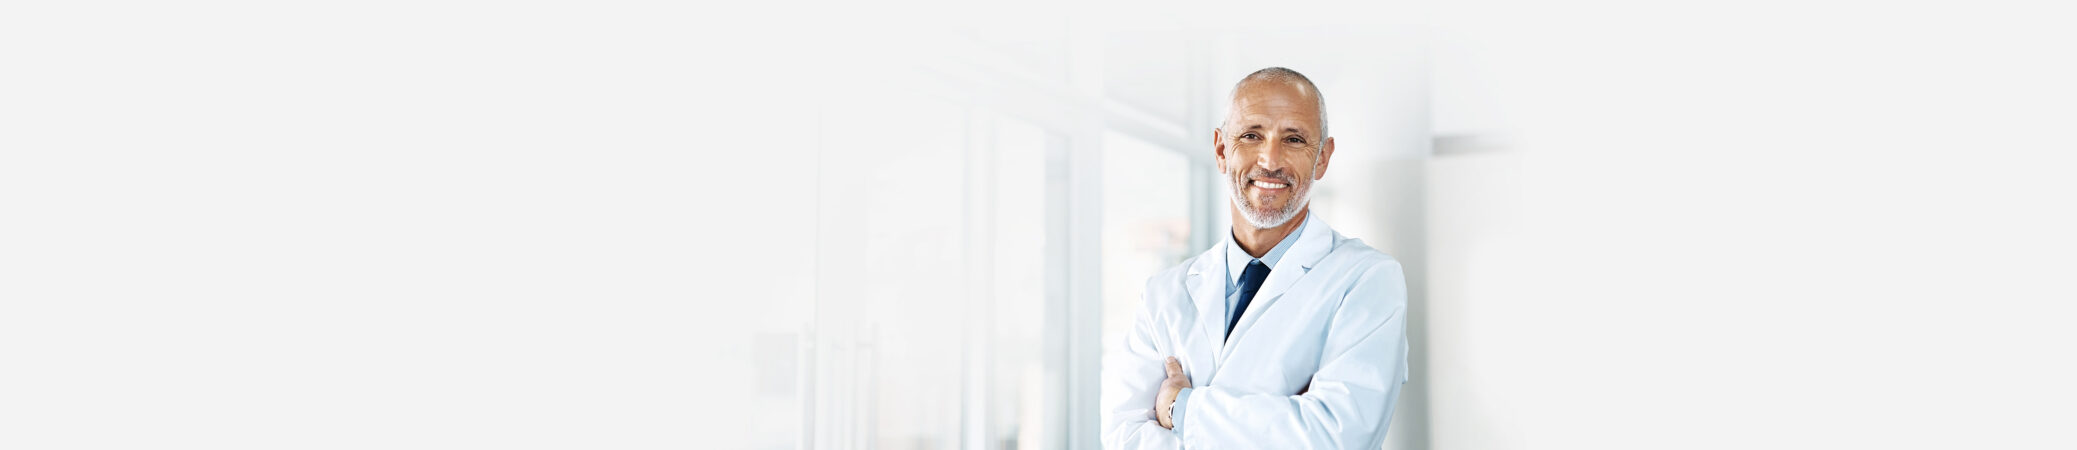 Doctor leaning against wall smiling